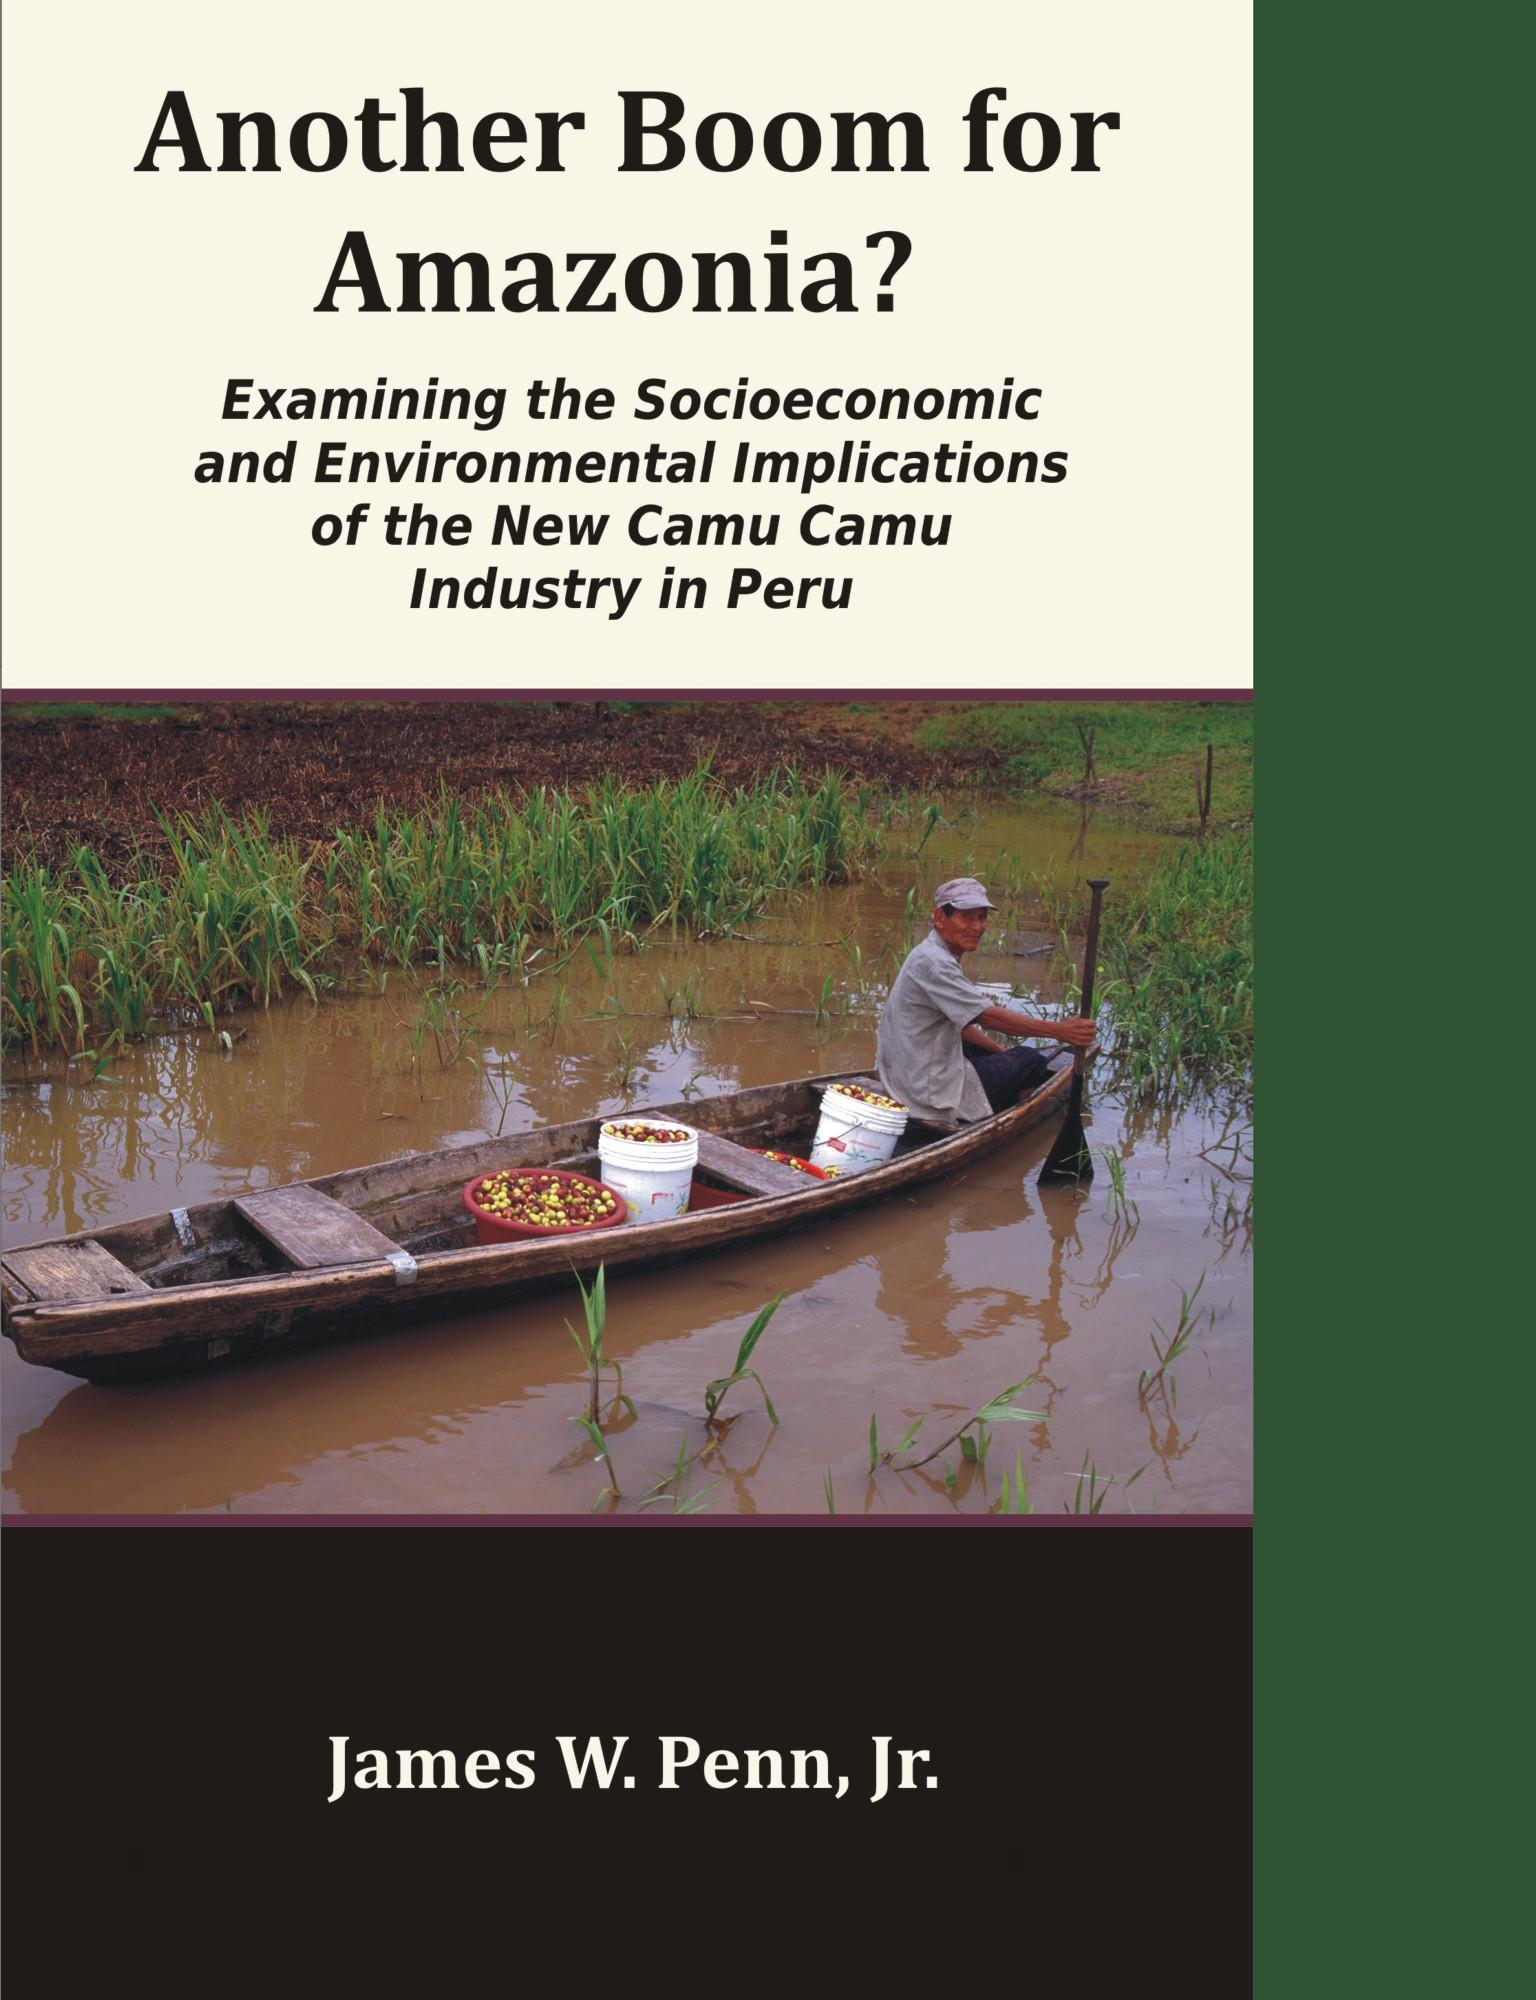 Another Boom for Amazonia?: Examining the Socioeconomic and Environmental Implications of the New Camu Camu Industry in Peru EB9781599423388